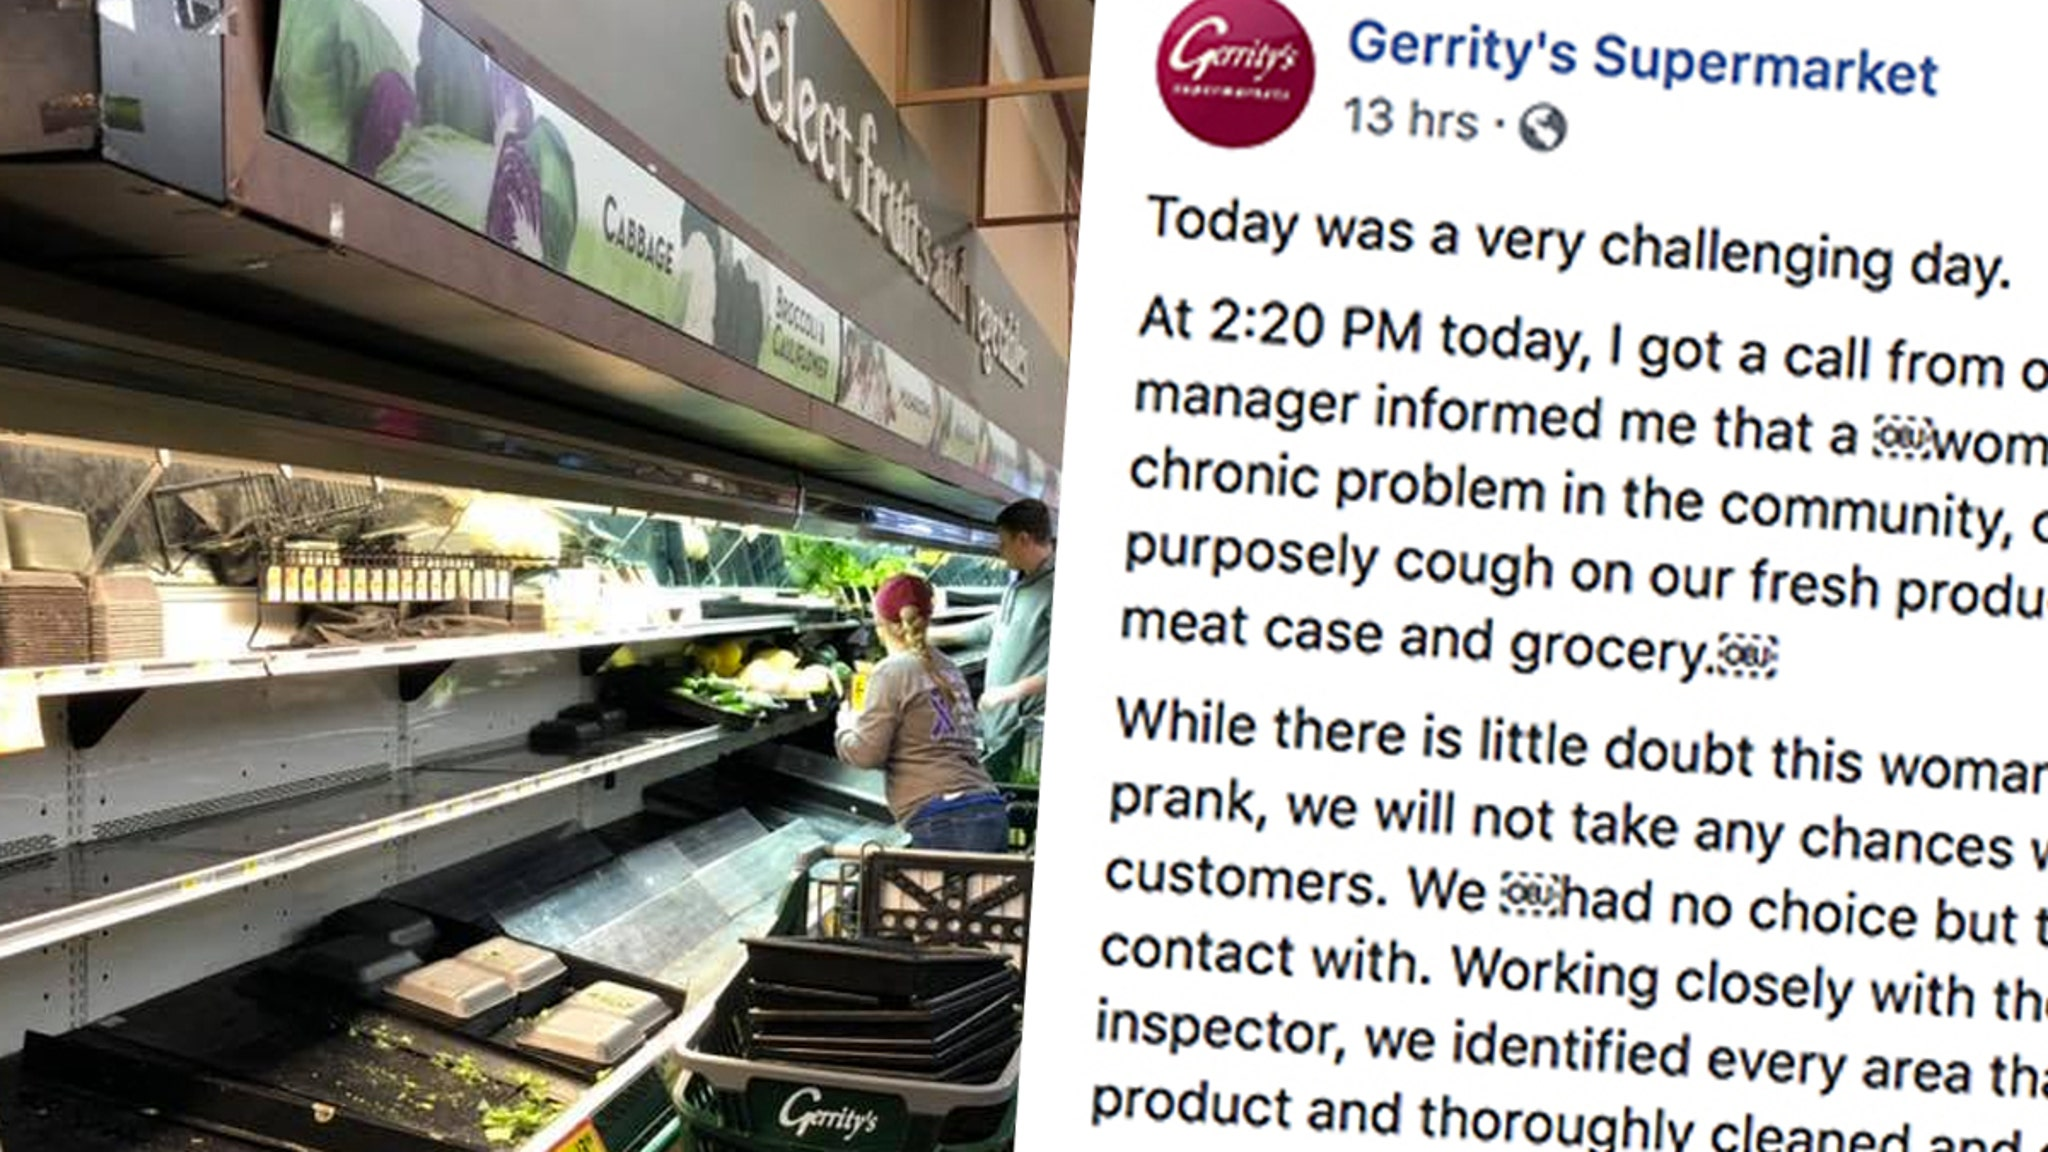 Woman Coughs All Over Supermarket's Fresh Produce in 'Twisted Prank'